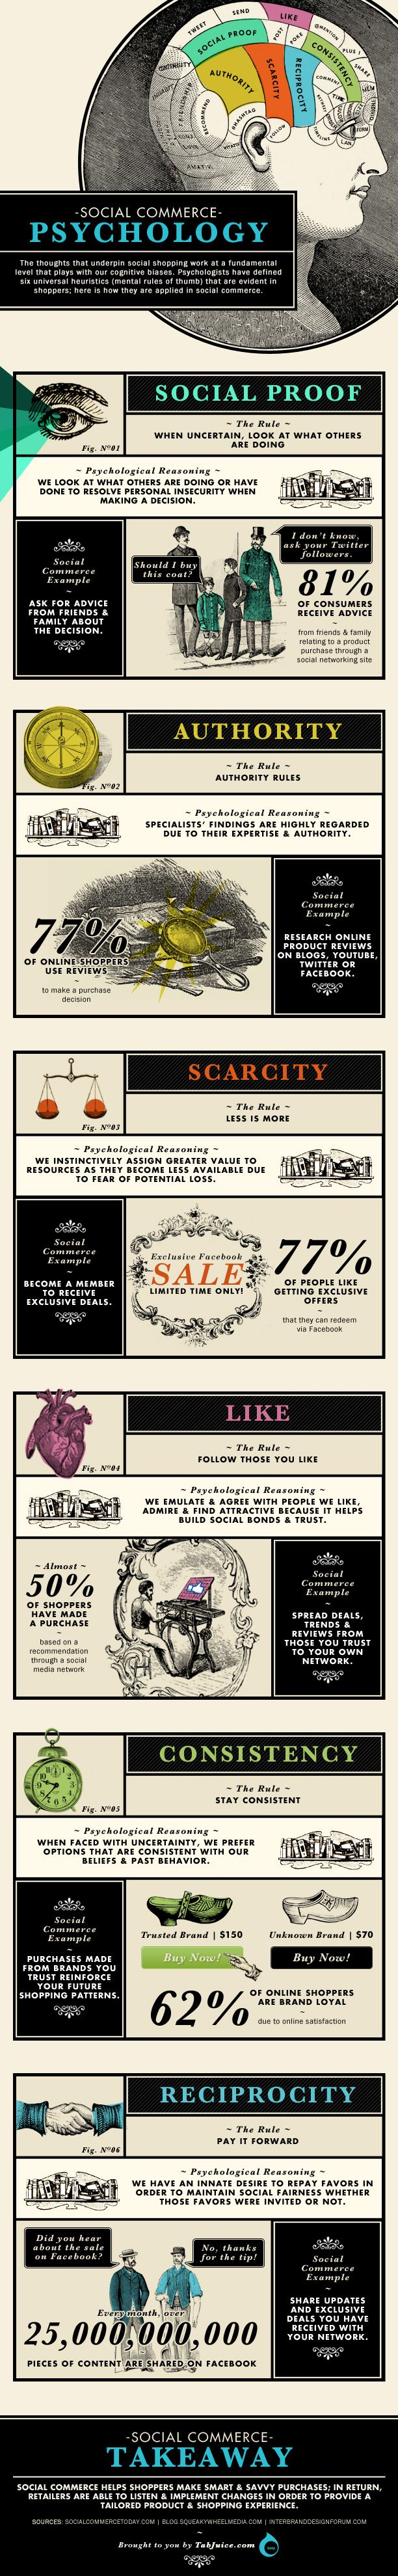 Social Proof and 5 Other Social Commerce Purchasing Influencers - love this infographic (via BrandonGaille.com)